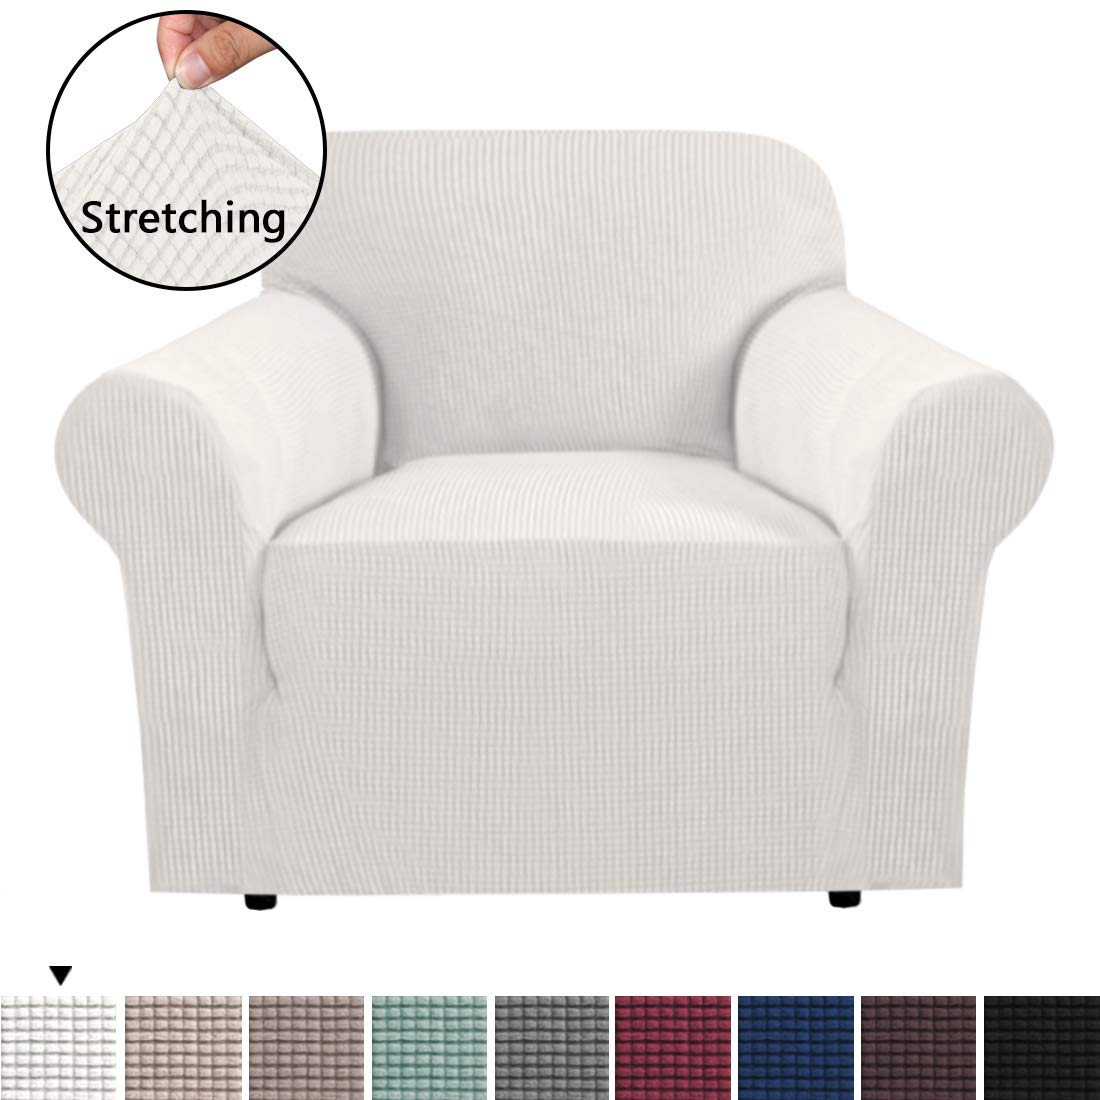 Durable Soft High Stretch Sofa Slipcover 1 Piece Ivory White Couch Covers Lycra Furniture Protector Couch Cover Machine Washable Spandex Sofa Covers, Form Fitted 1 Seater Sofa Chair Cover